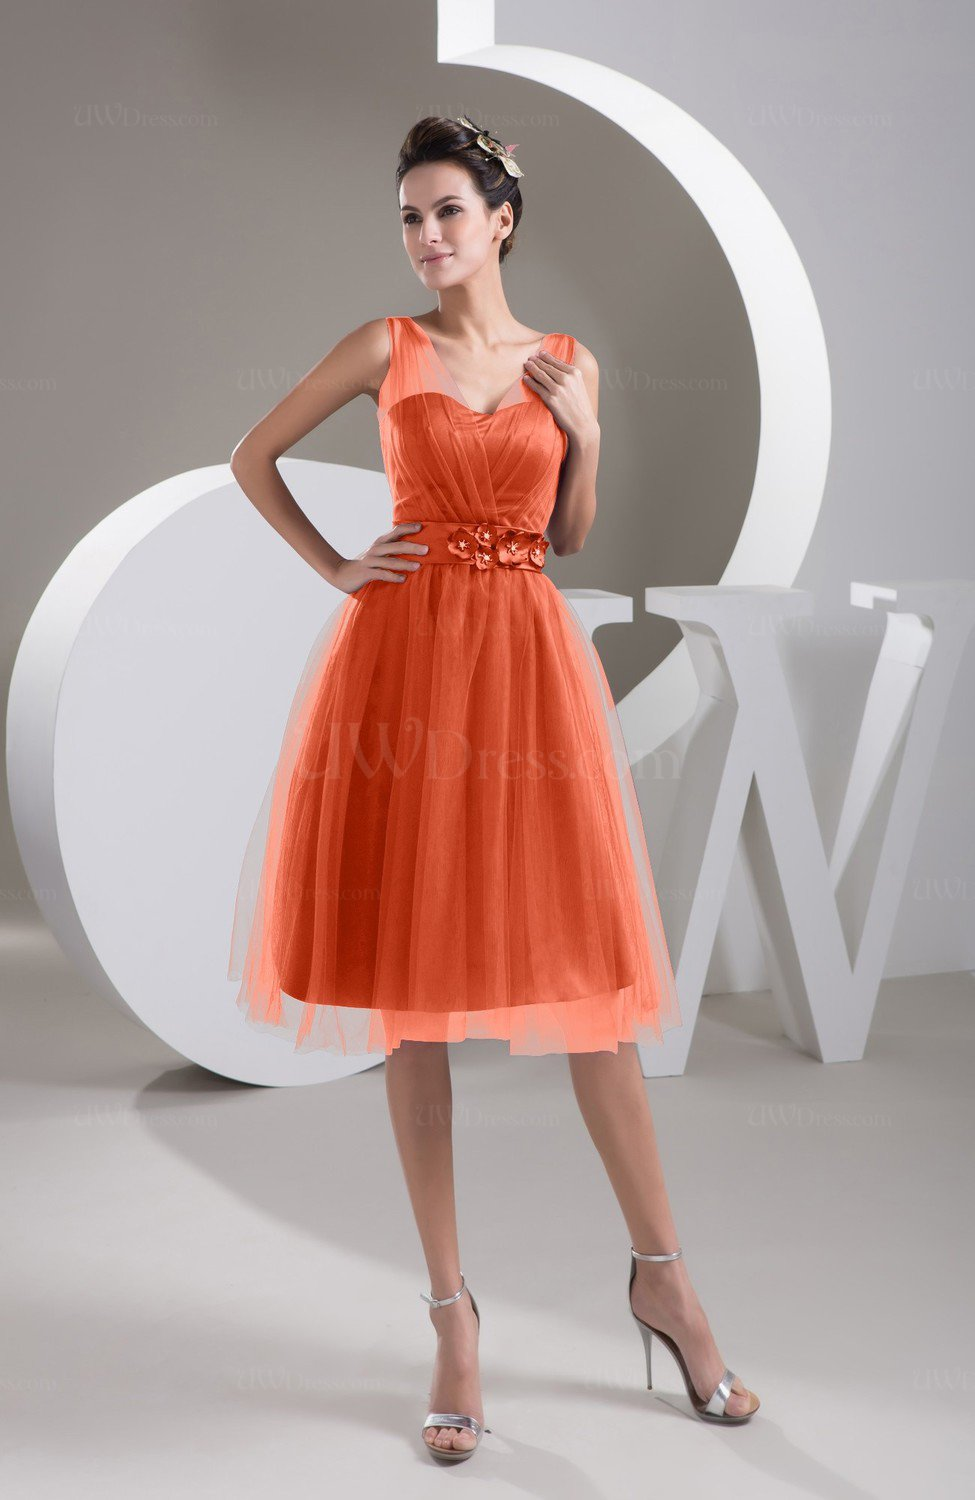 021c5dd2bf98 Persimmon Inexpensive Bridesmaid Dress Short Sheer Knee Length Informal  Elegant (Style D14229)